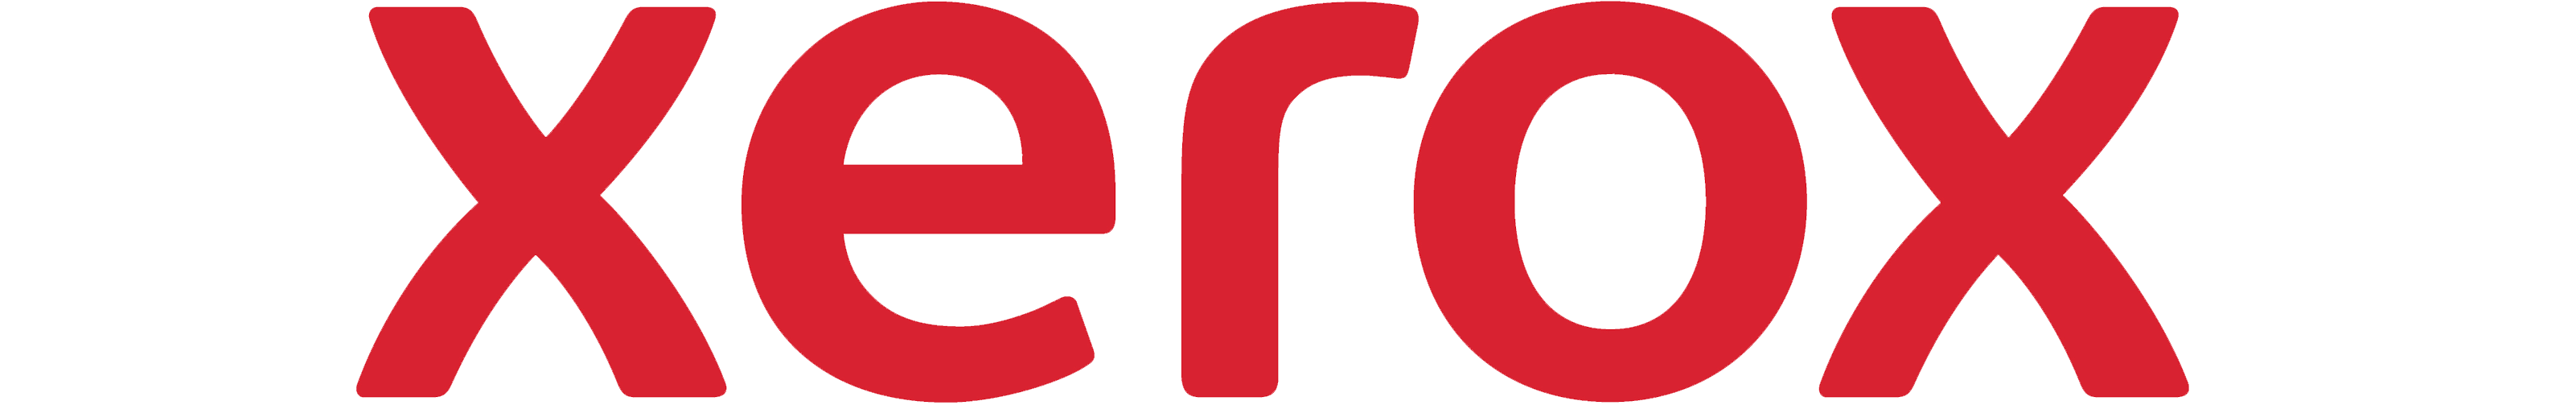 https://uniqueoffice.systems/wp-content/uploads/2019/08/Xerox-Logo.png